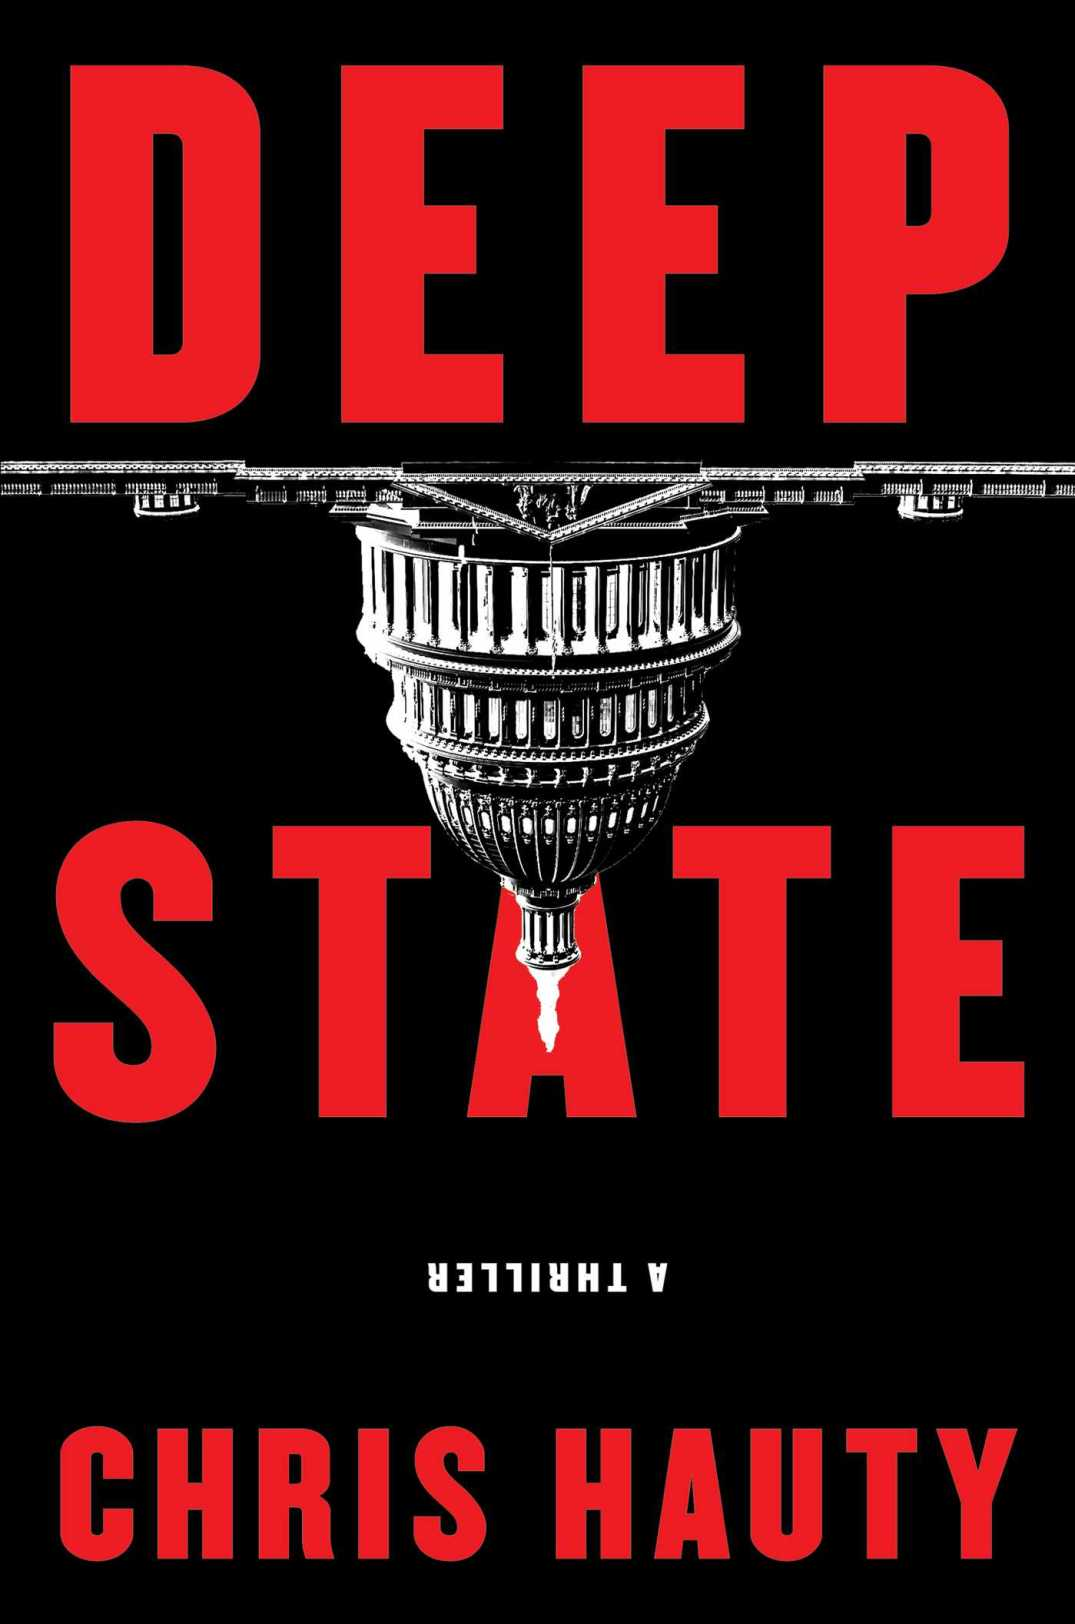 Deep State Chris Haughty book image